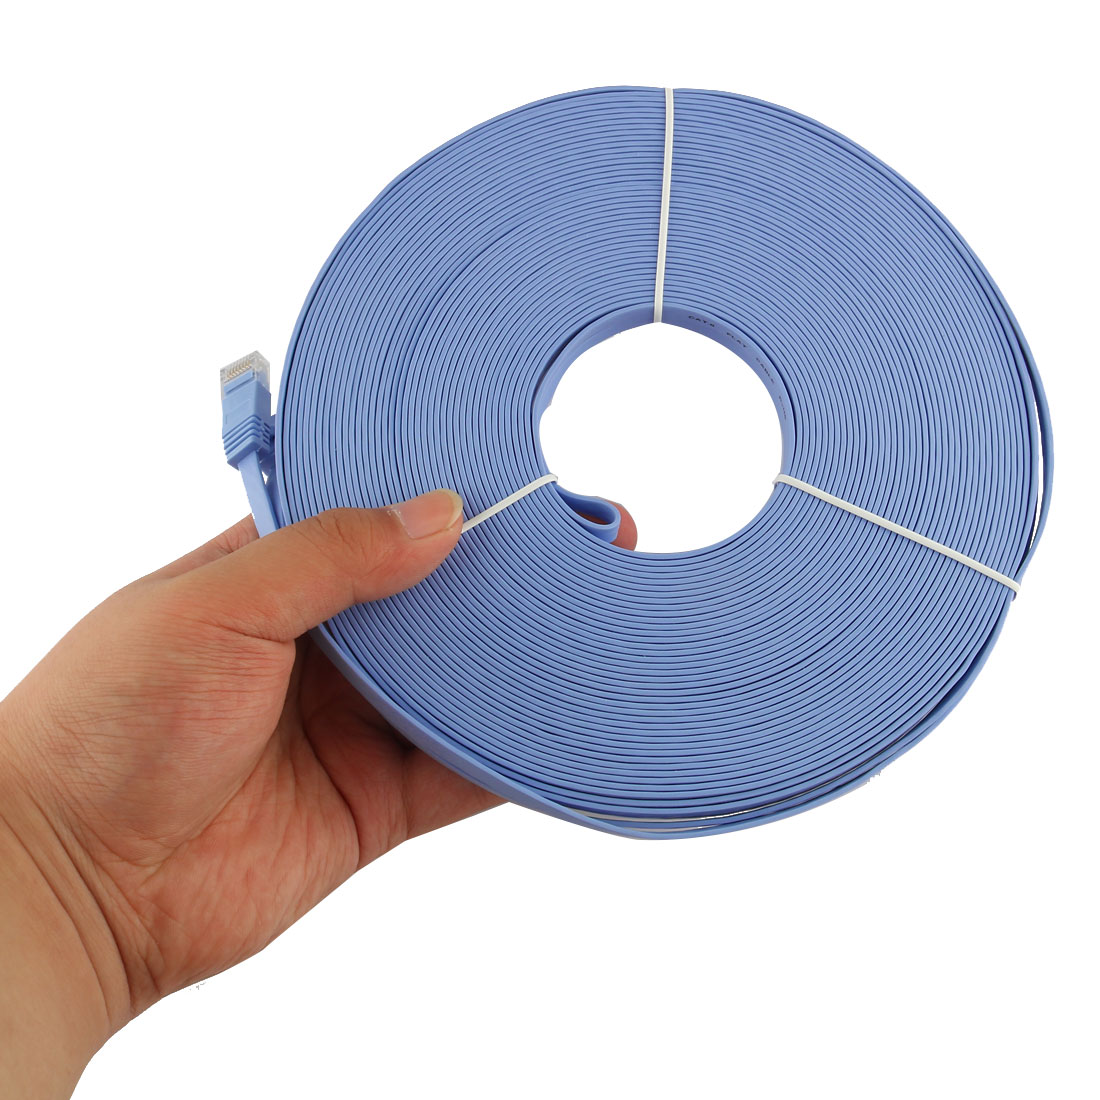 98FT-30M-CAT6-CAT-6-Flat-UTP-Ethernet-Reseau-Cable-RJ45-Patch-LAN-Cord-Bleu miniature 4